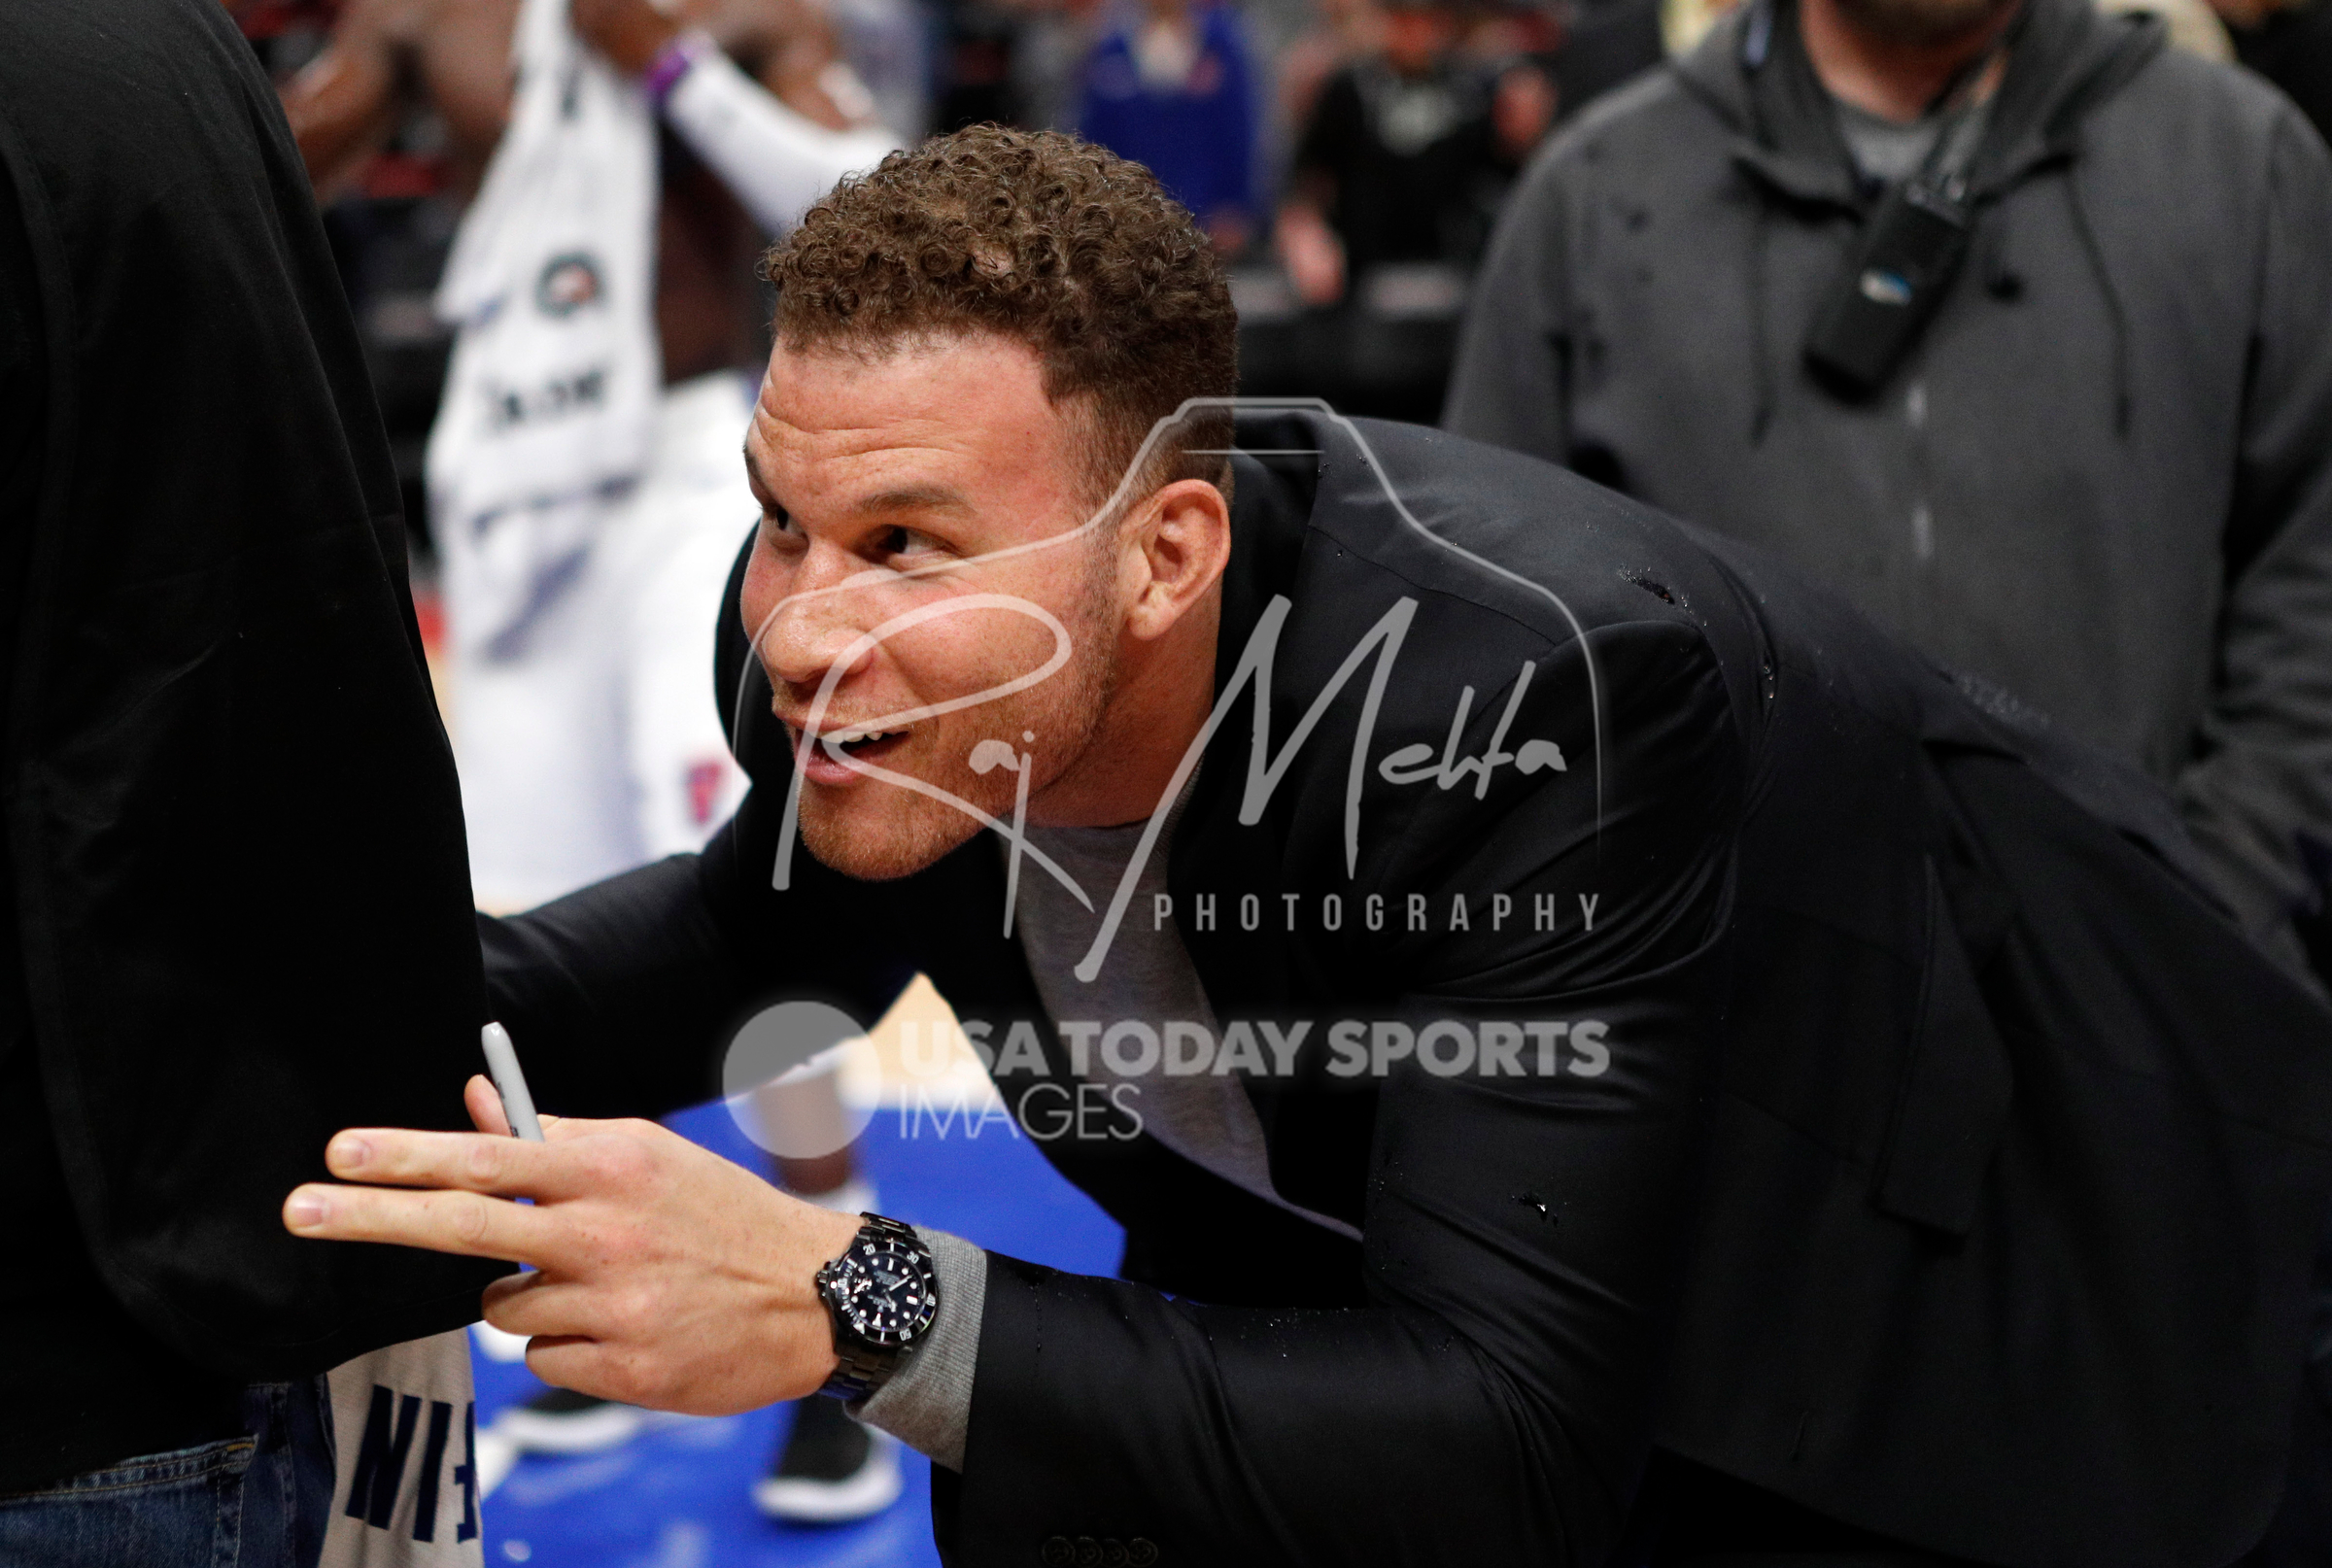 Apr 6, 2018; Detroit, MI, USA; Detroit Pistons forward Blake Griffin (23) hids behind a photographer to stay dry after the game against the Dallas Mavericks at Little Caesars Arena. Mandatory Credit: Raj Mehta-USA TODAY Sports